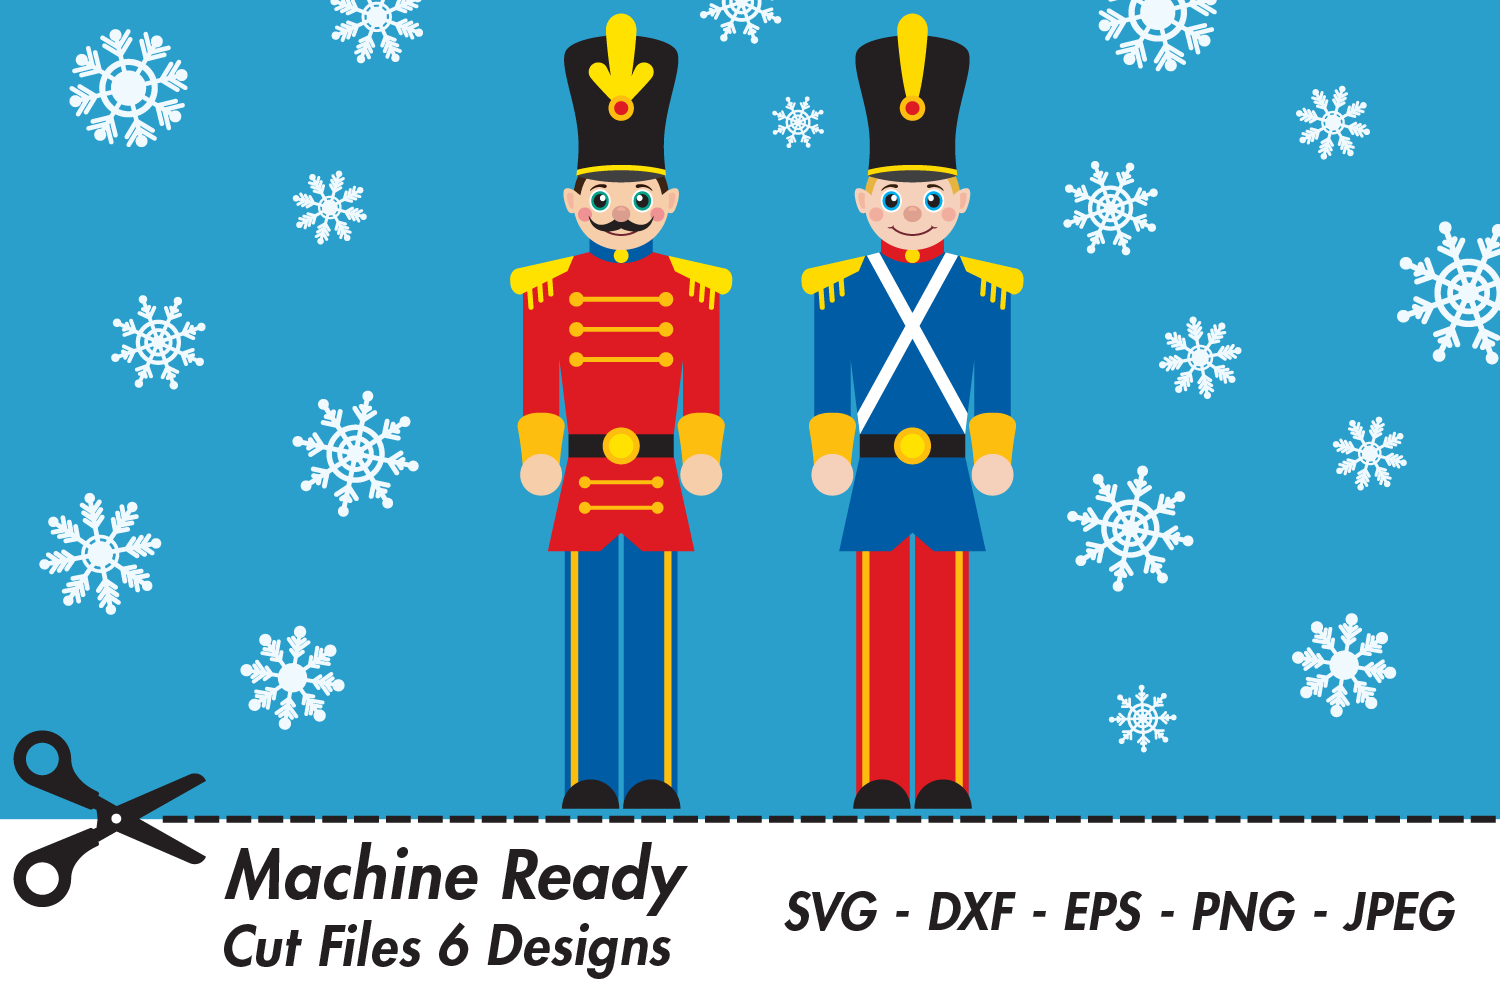 Download Free Cute Christmas Toy Soldiers Graphic By Captaincreative for Cricut Explore, Silhouette and other cutting machines.